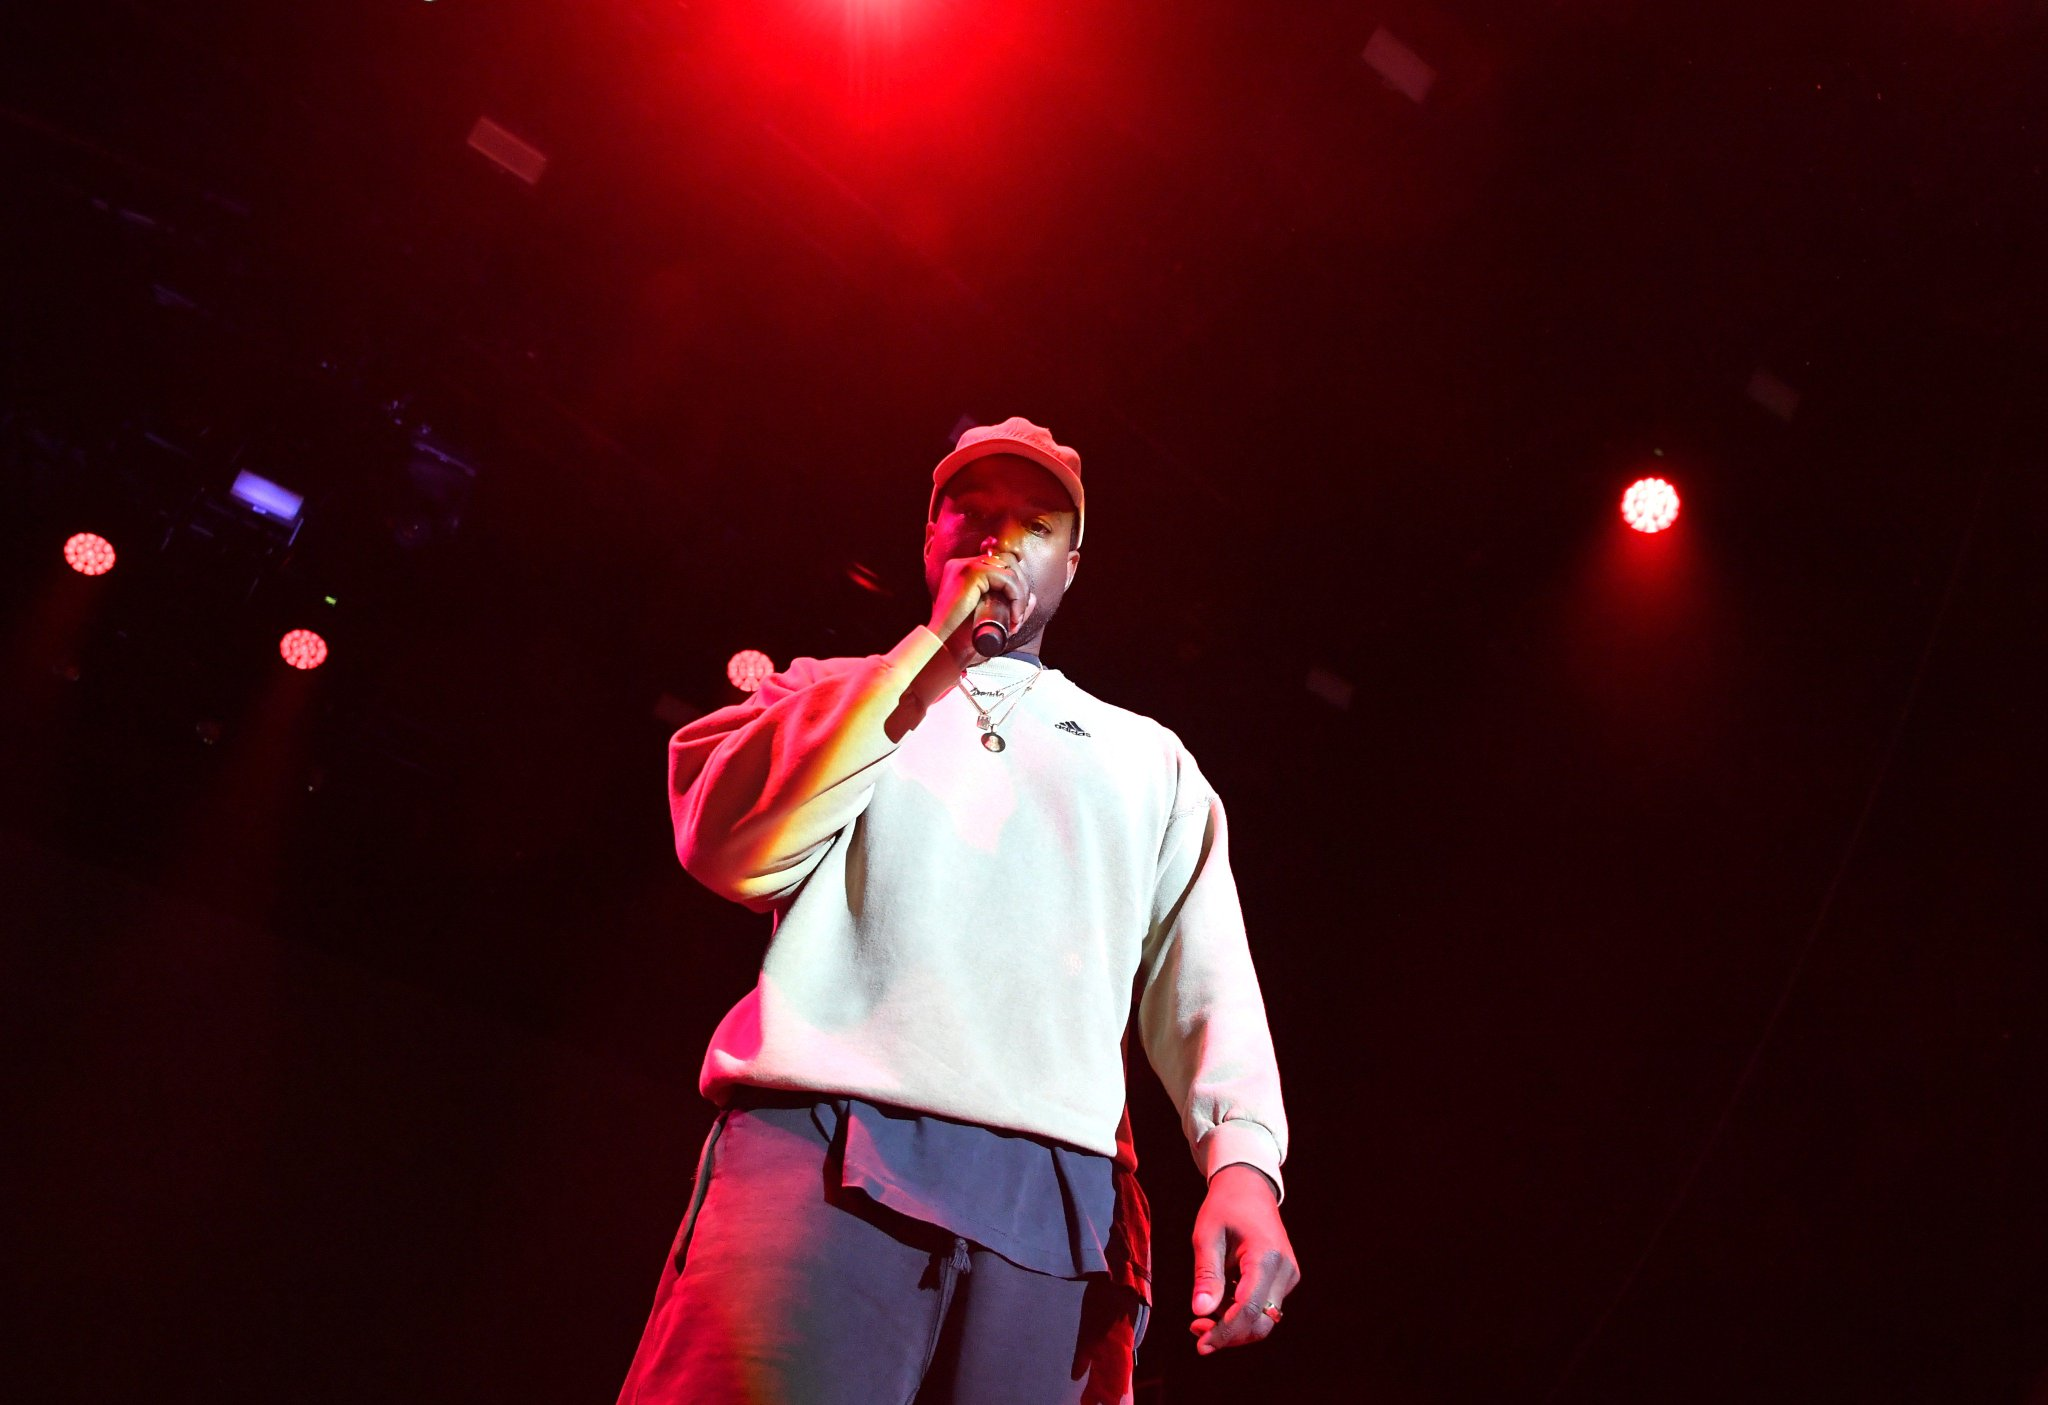 Kanye West back at work in Jackson Hole with @trvisXX, @KingL, @TheKingDream, & more https://t.co/riv8FQ5Ny5 https://t.co/N0pg3UrJoS